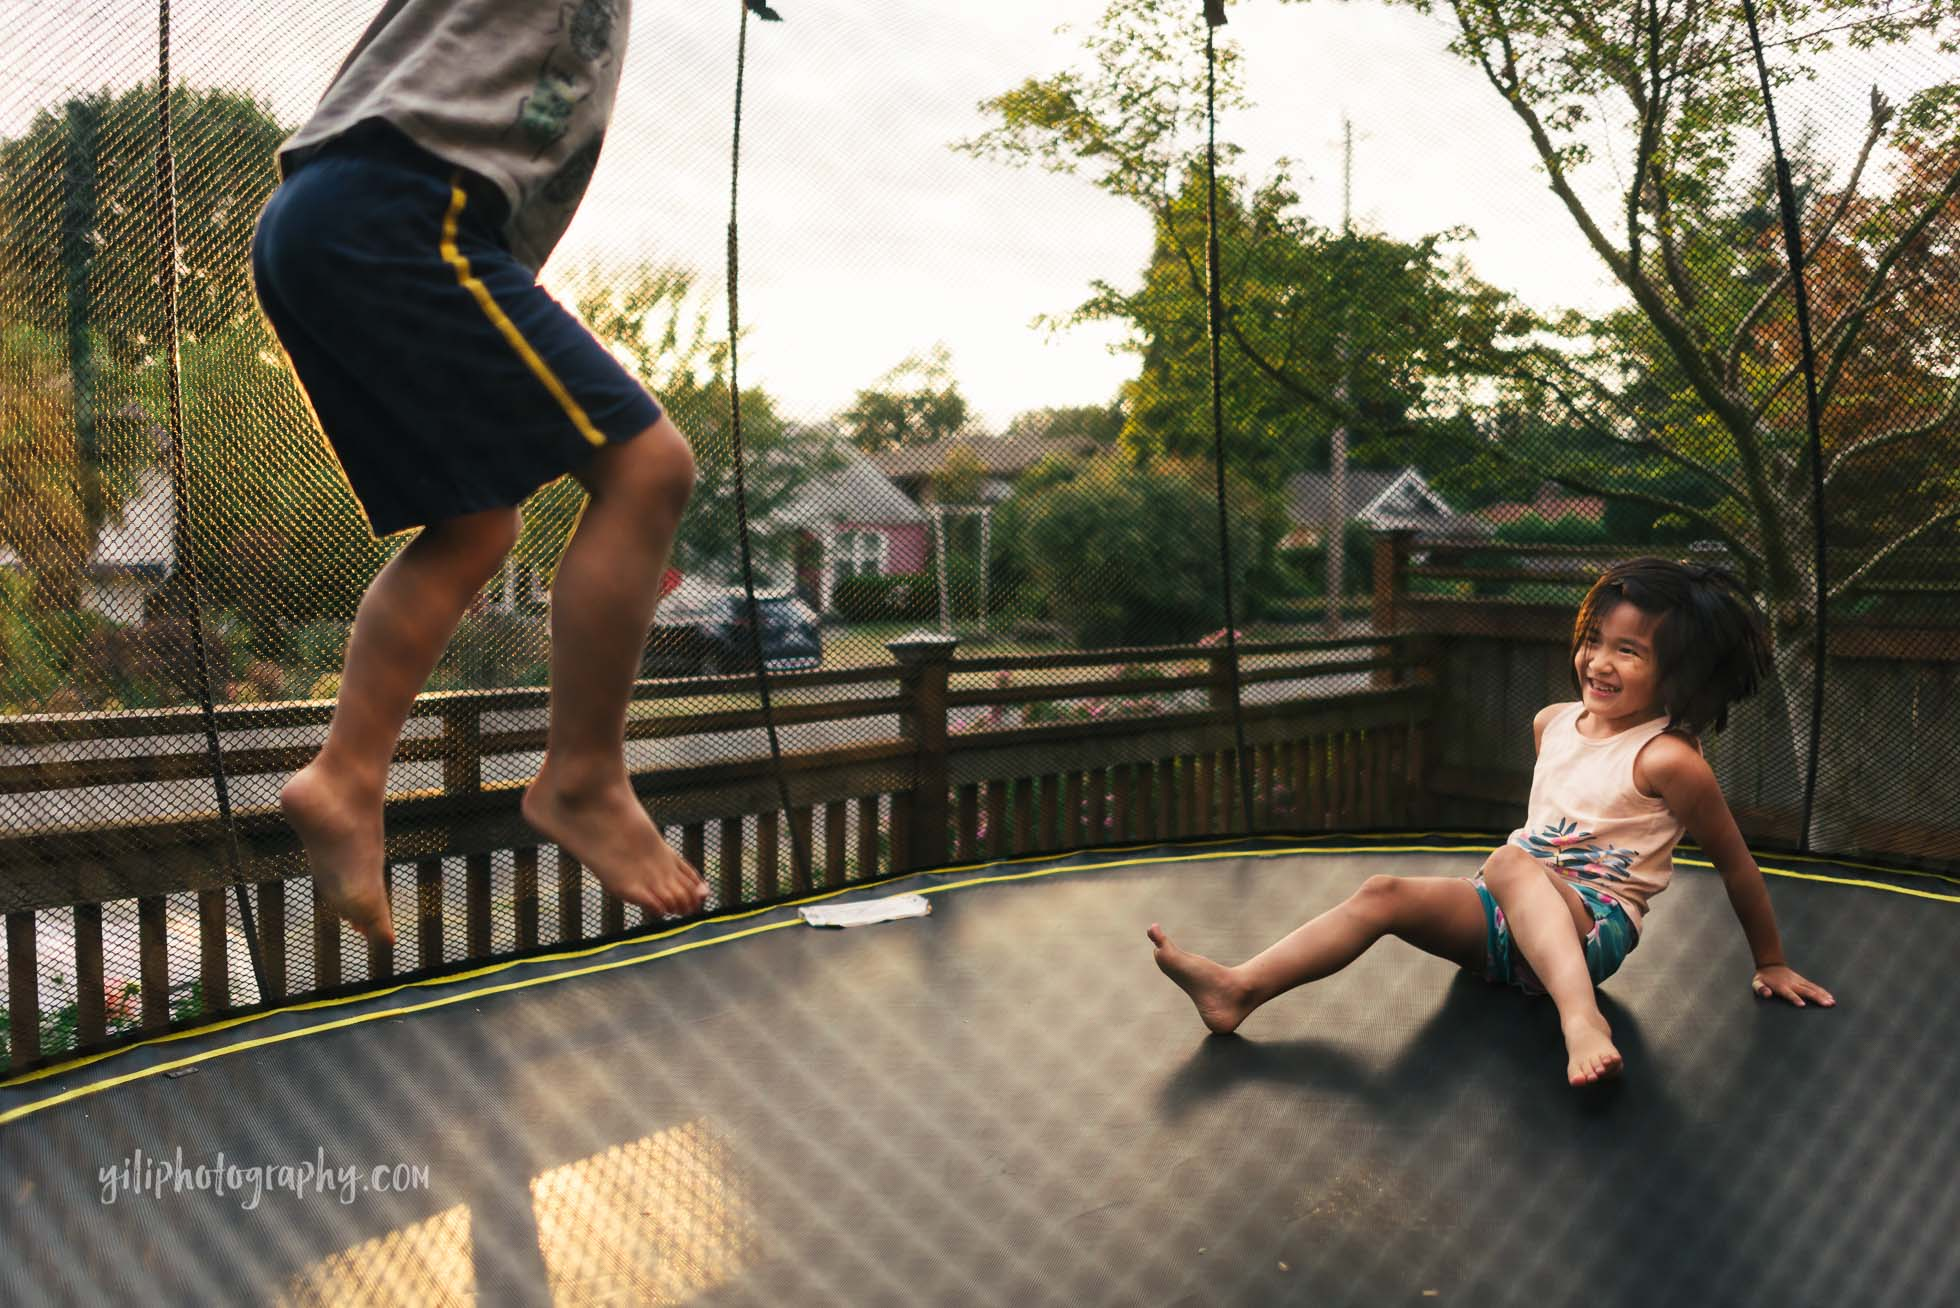 girl laughing on trampoline while her brother jumps next to her